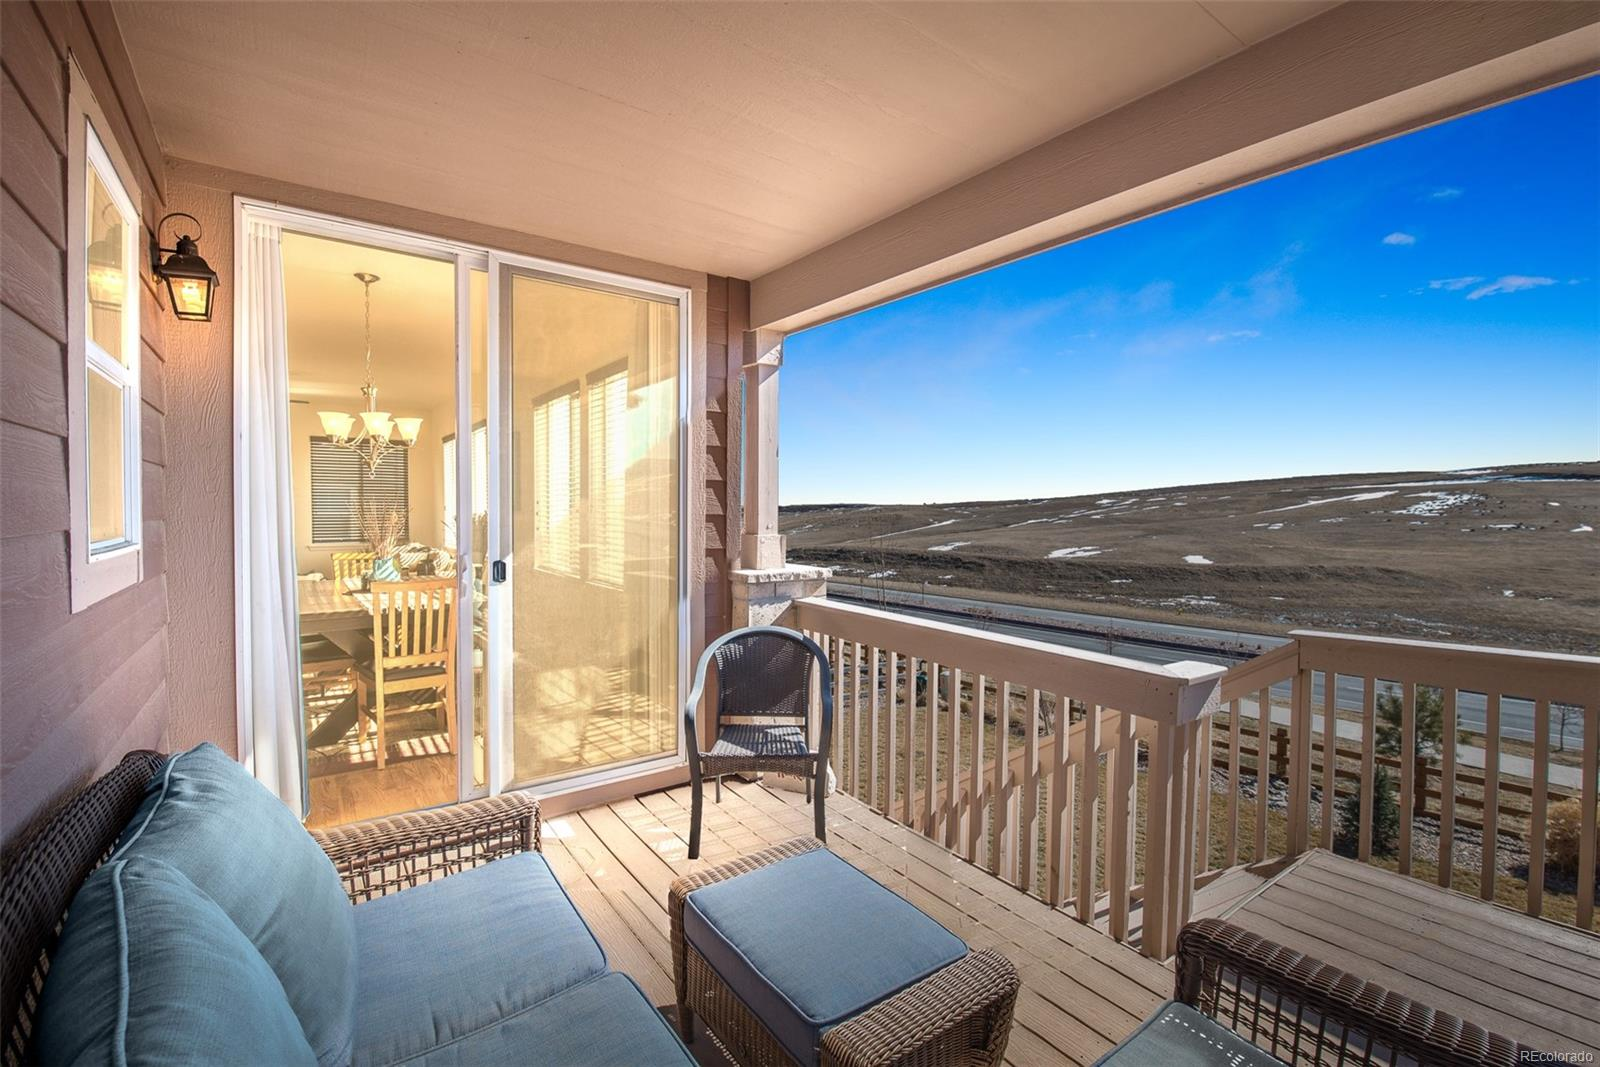 Enjoy sunsets and stunning views from the covered porch